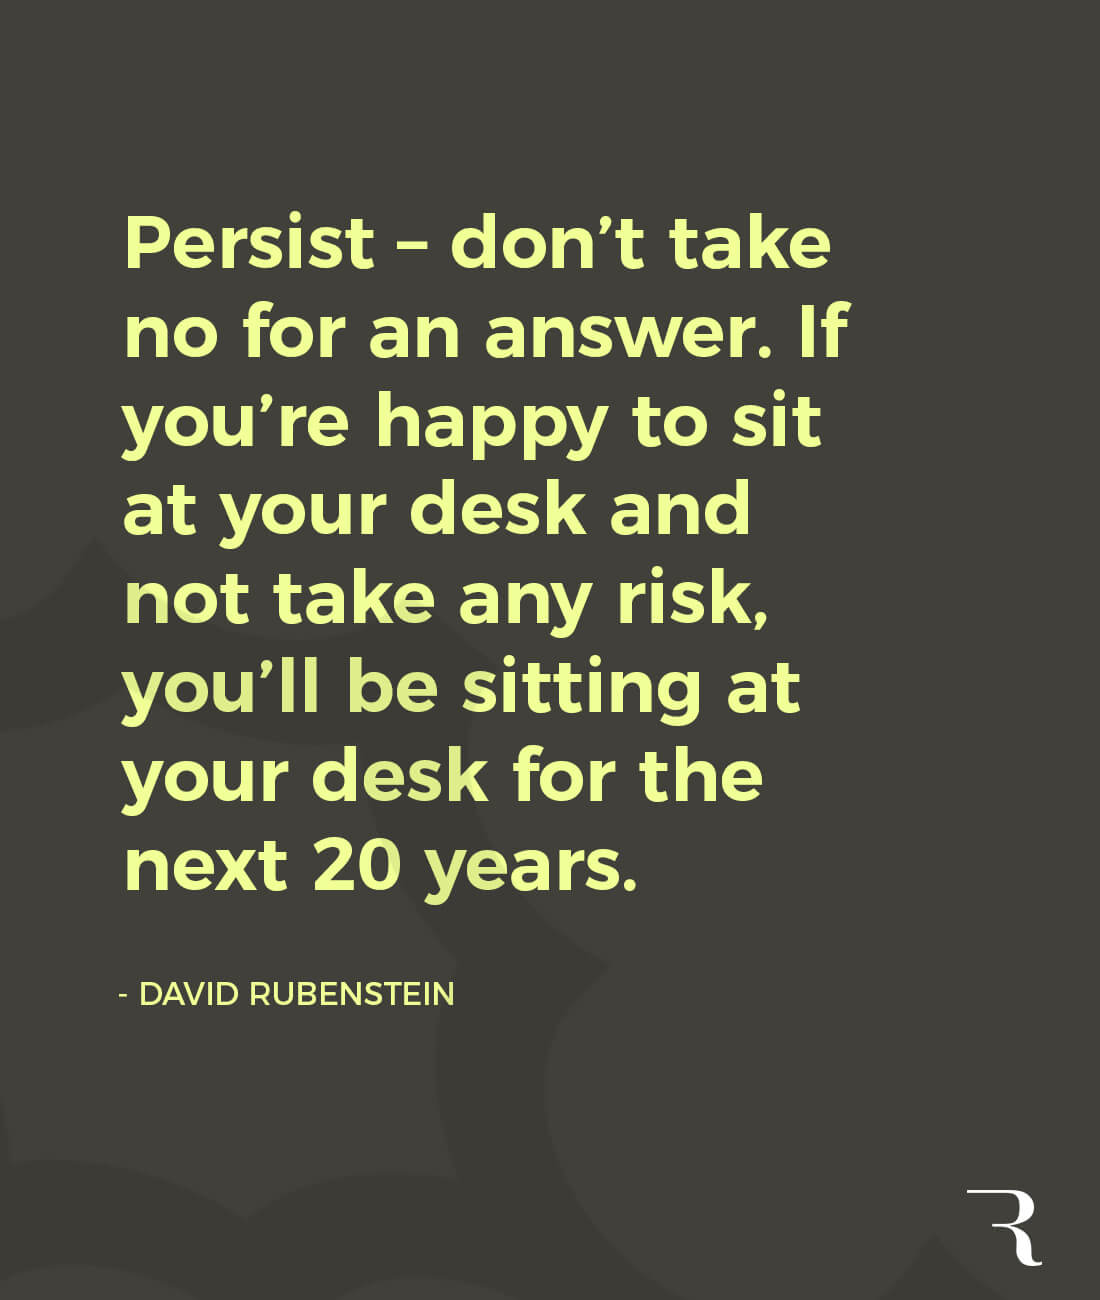 """Motivational Quotes: """"Don't take no for an answer. If you don't take risks, you'll be at your desk forever."""" 112 Motivational Quotes to Be a Better Entrepreneur"""